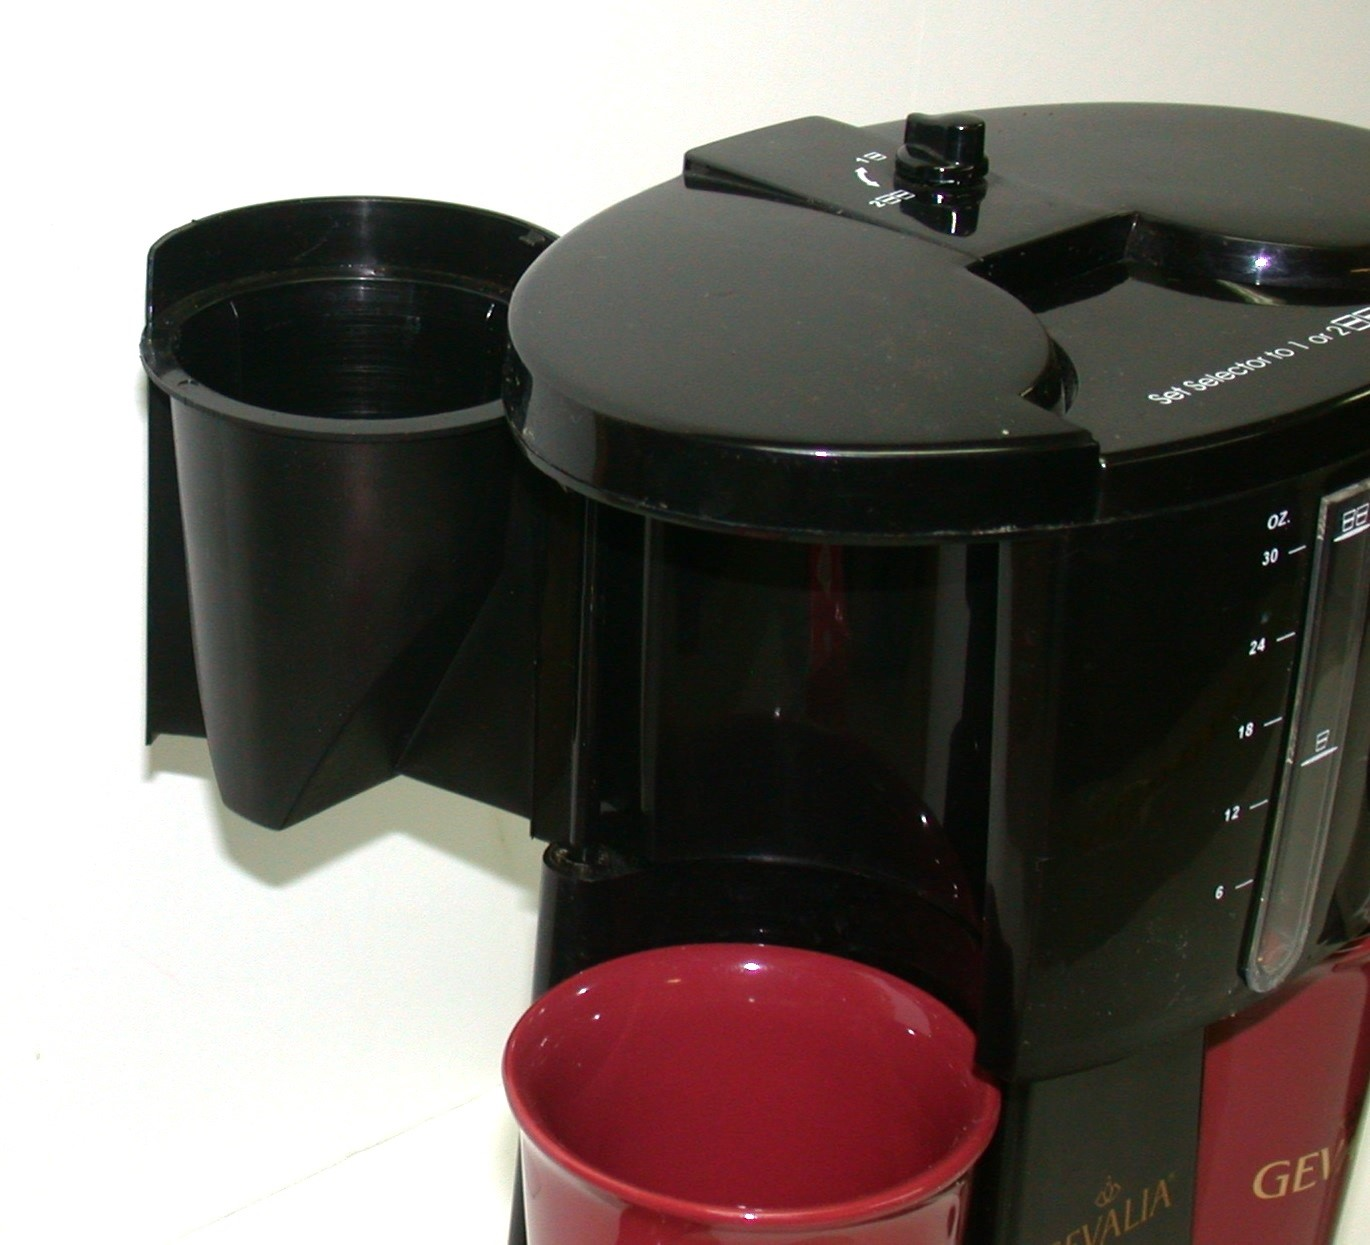 Gevalia Coffee for Two 85188 14-Cups Coffee Maker eBay